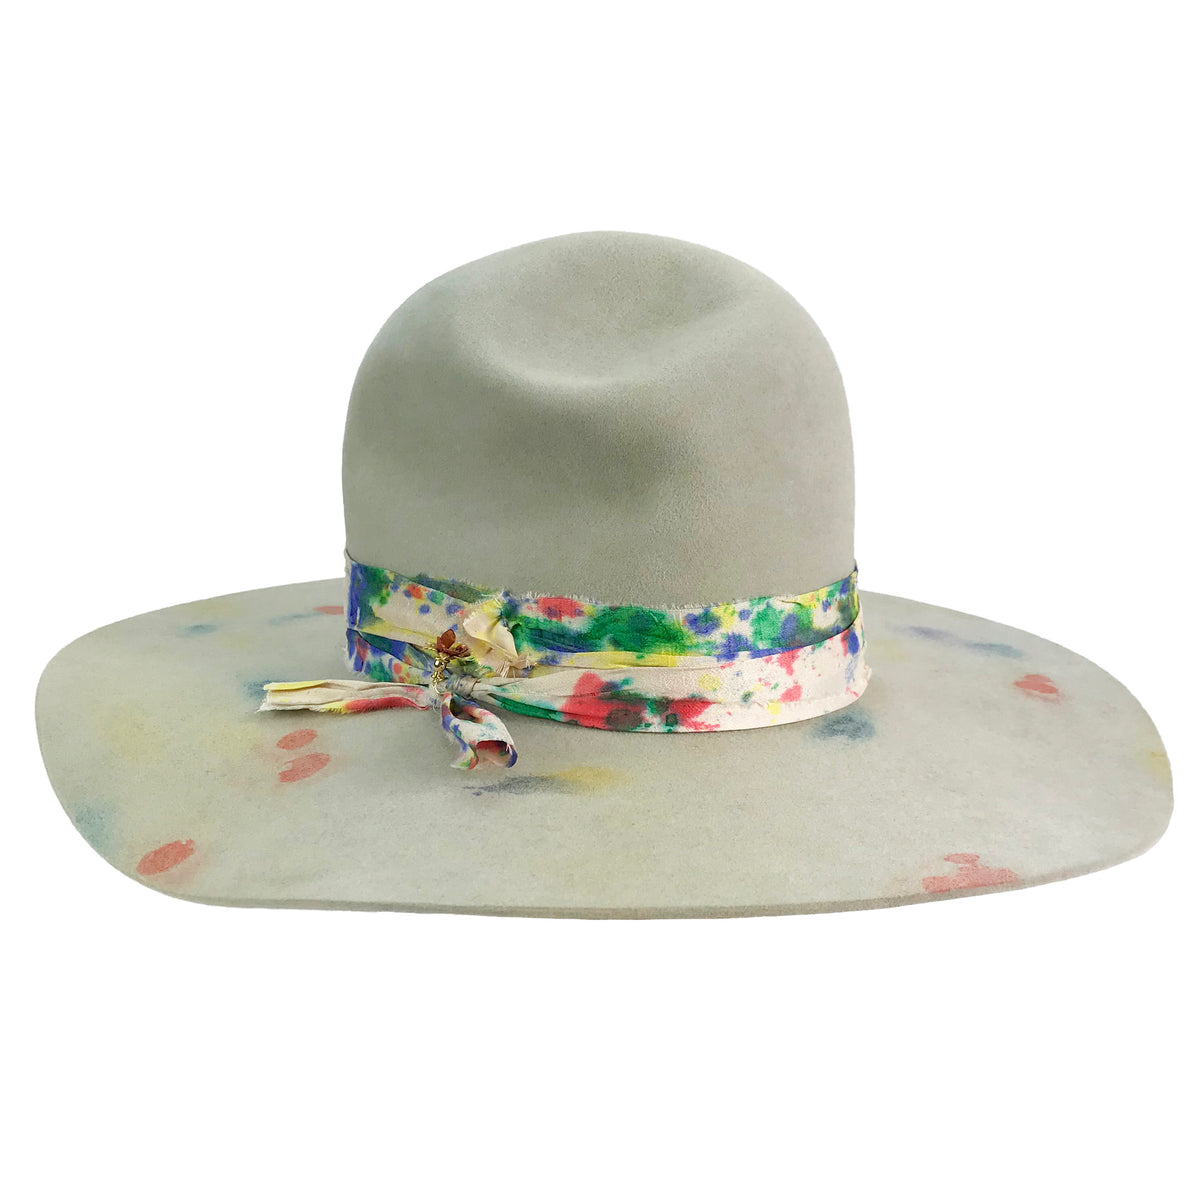 hand dyed hat body with bashed in open crown